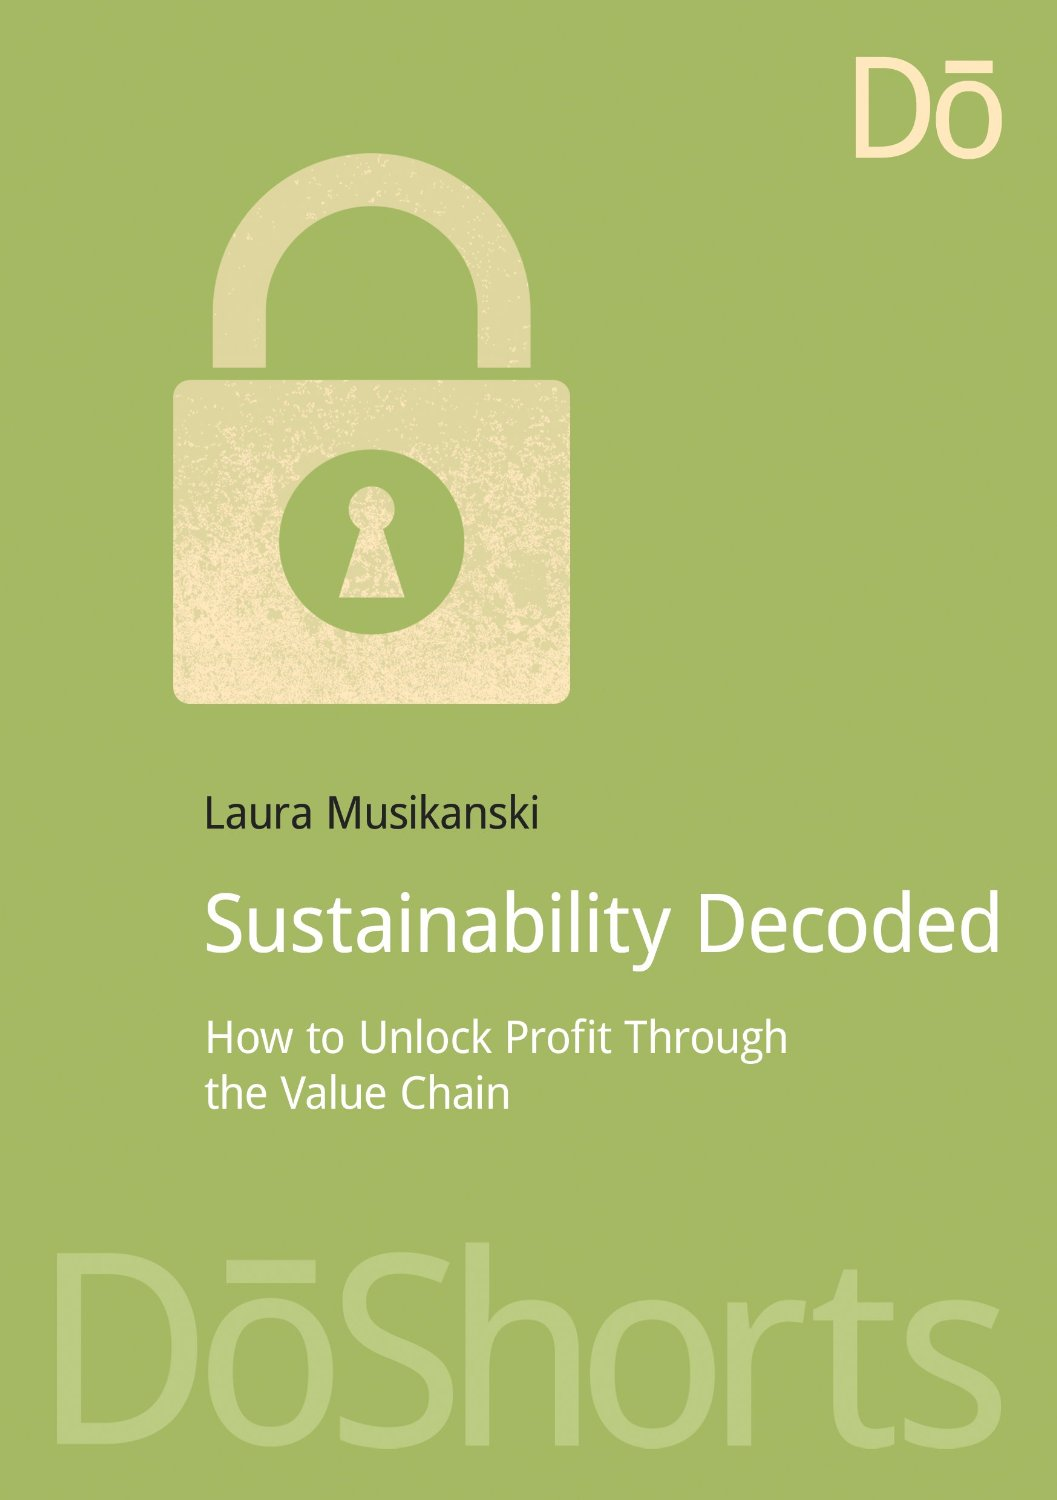 Sustainability Decoded: How to Unlock Profit Through the Value Chain (Laura Musikanski)